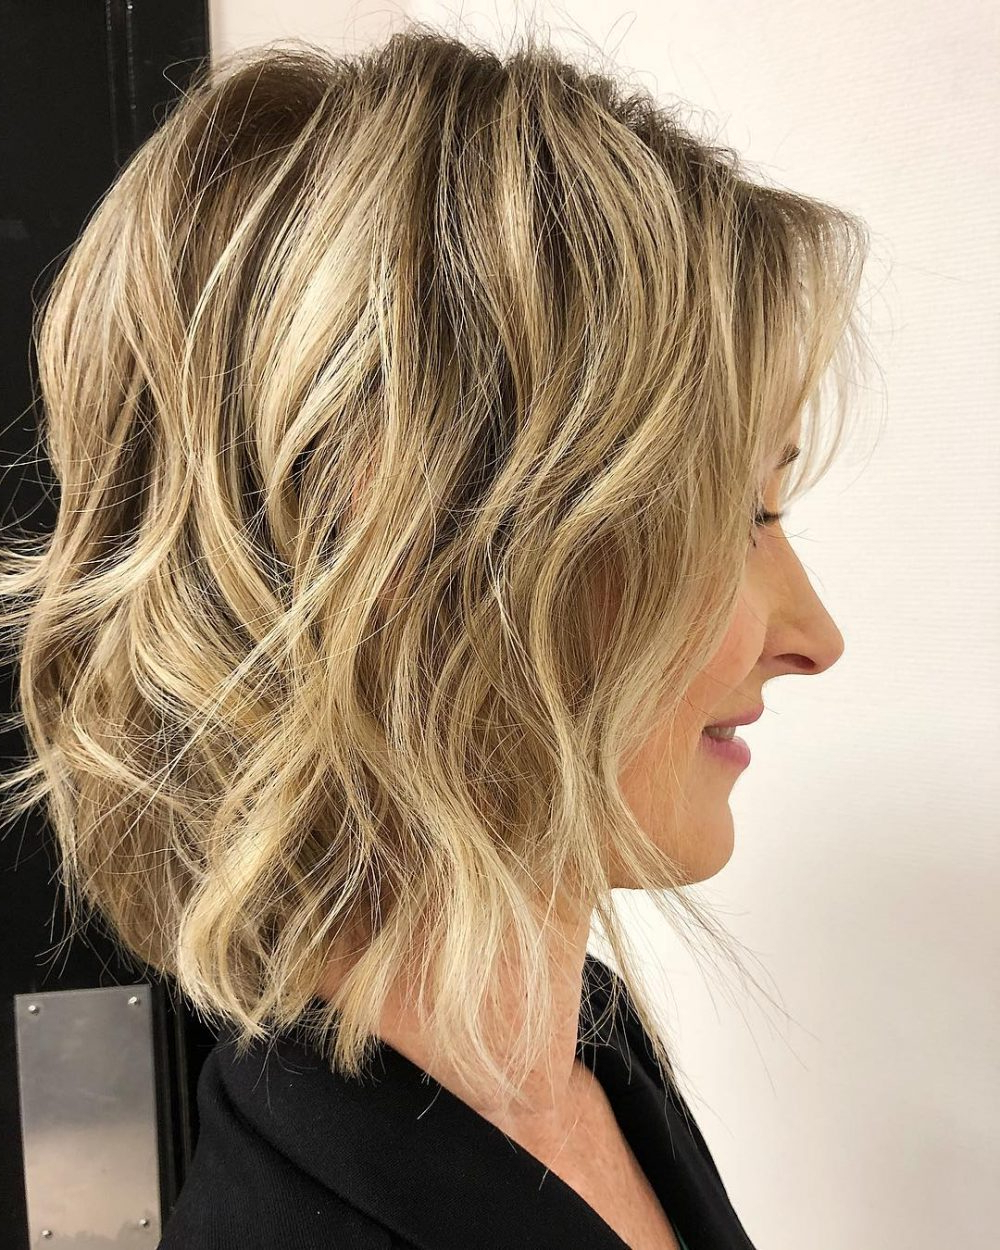 43 Perfect Short Hairstyles For Fine Hair In 2018 Throughout Wavy Sassy Bob Hairstyles (View 20 of 25)